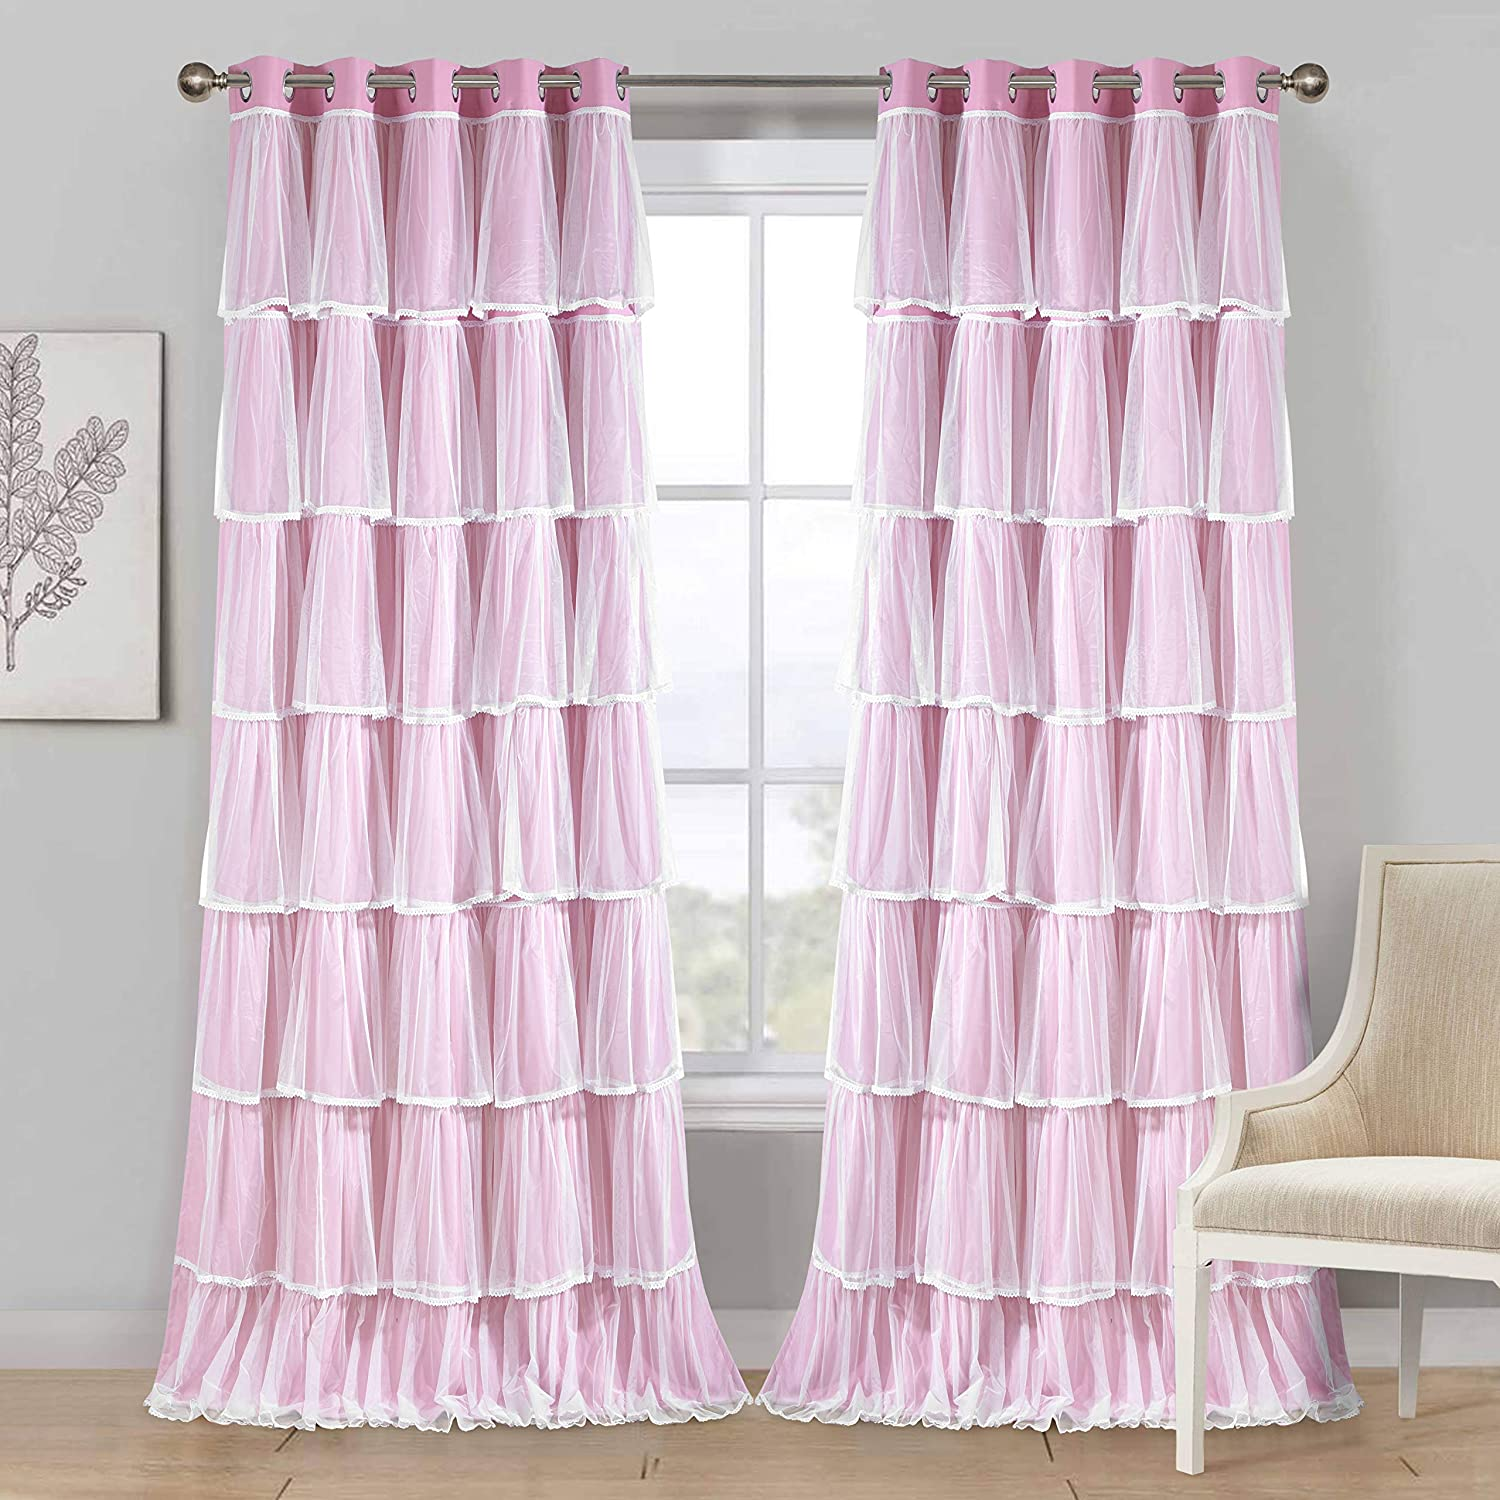 Amazon Com Loyolady Pink Blackout Curtains For Bedroom Lace Overlay Thermal Insulated Living Room Curtains 84 Inches Long 1 Panel 52 W X 84 L Grommet Blackout Curtain For Boys Kitchen Dining